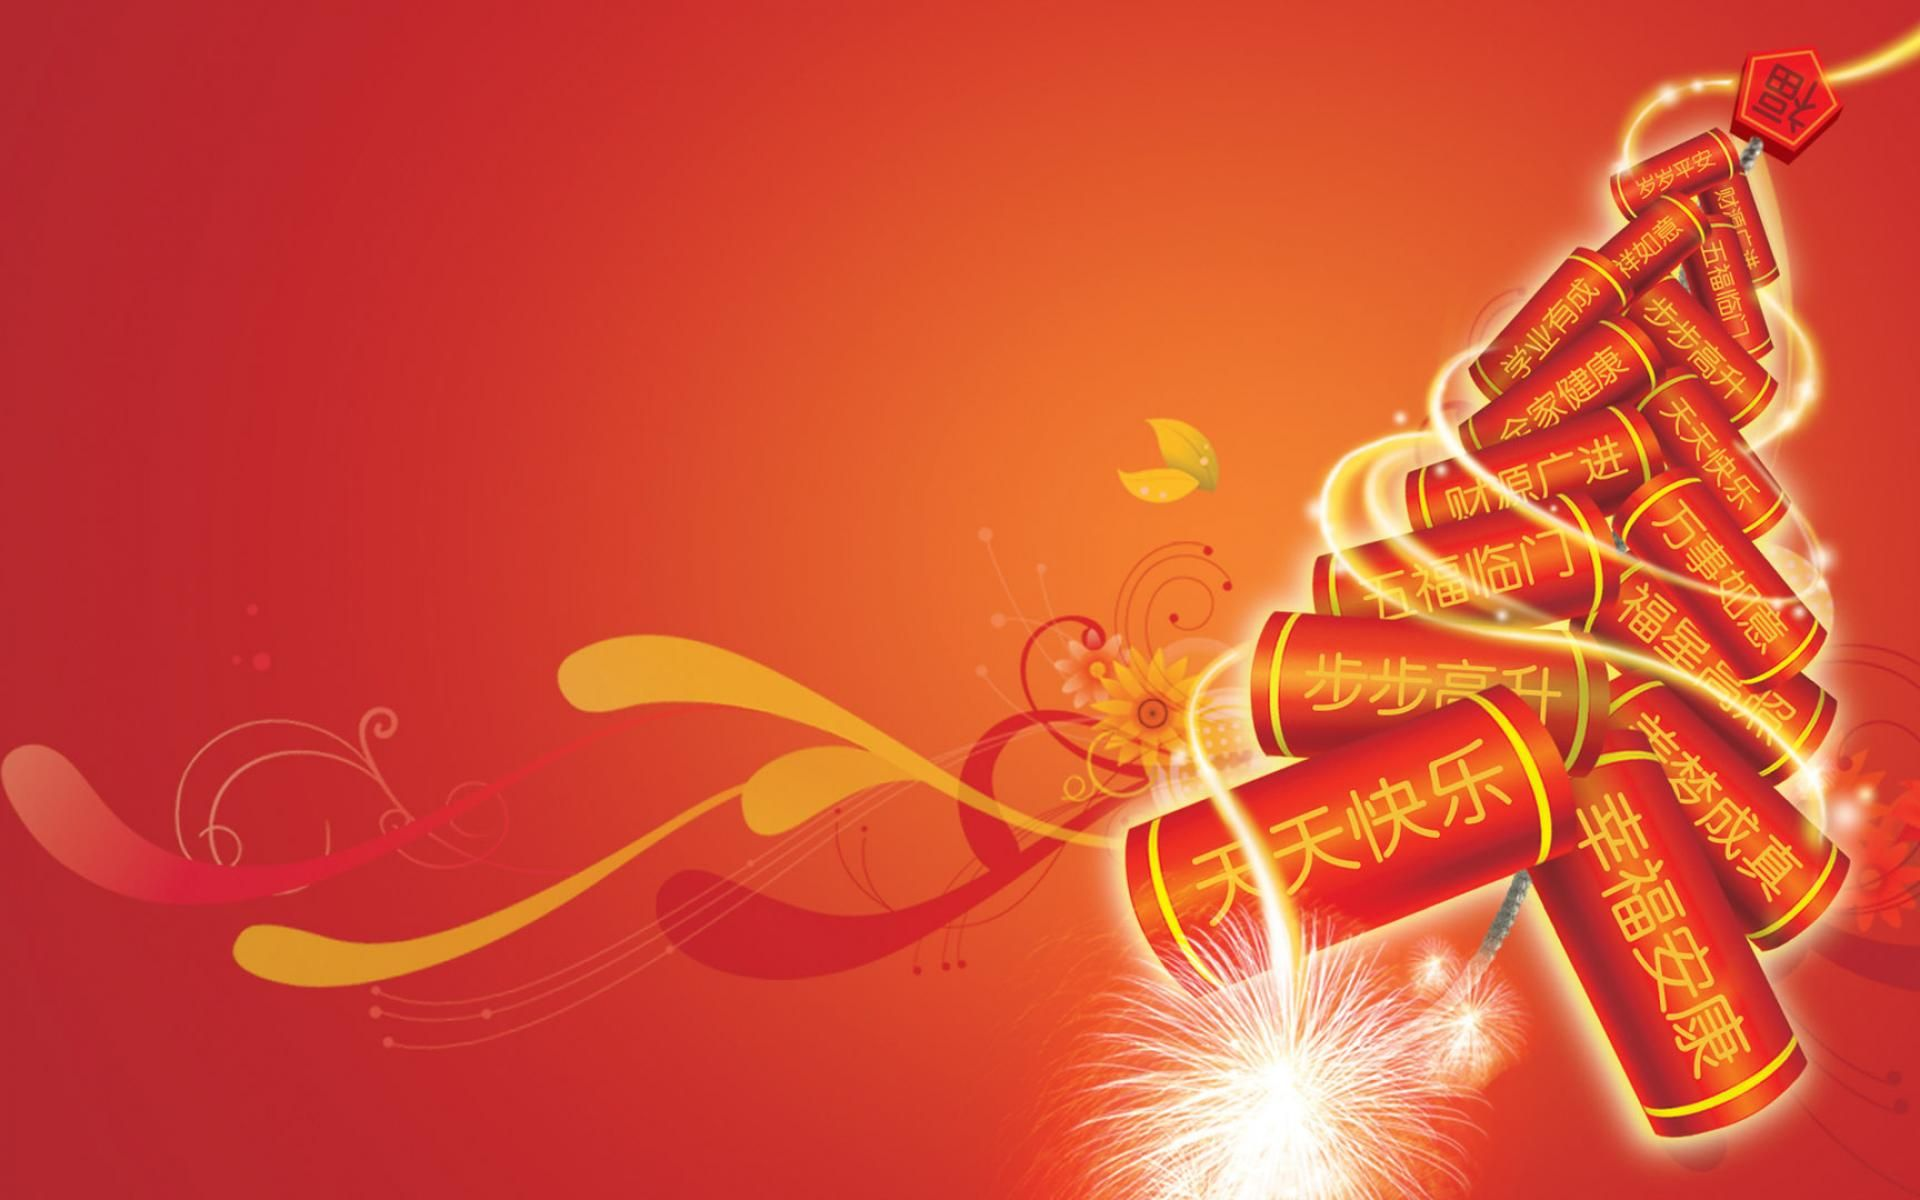 chinese new year 2016 image